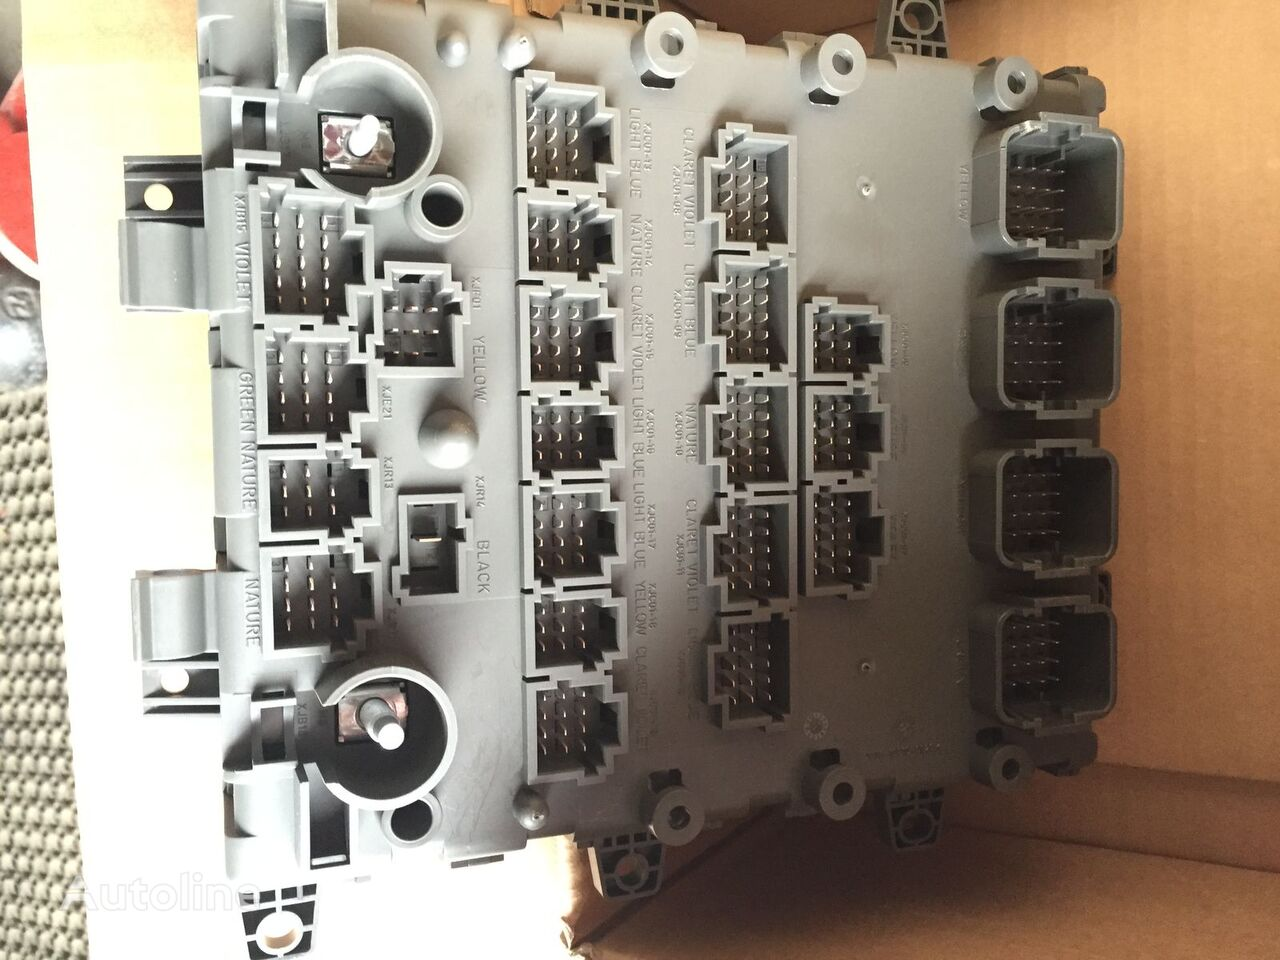 Awesome Volvo Fh 480 Fuse Box Auto Electrical Wiring Diagram Wiring Cloud Cosmuggs Outletorg